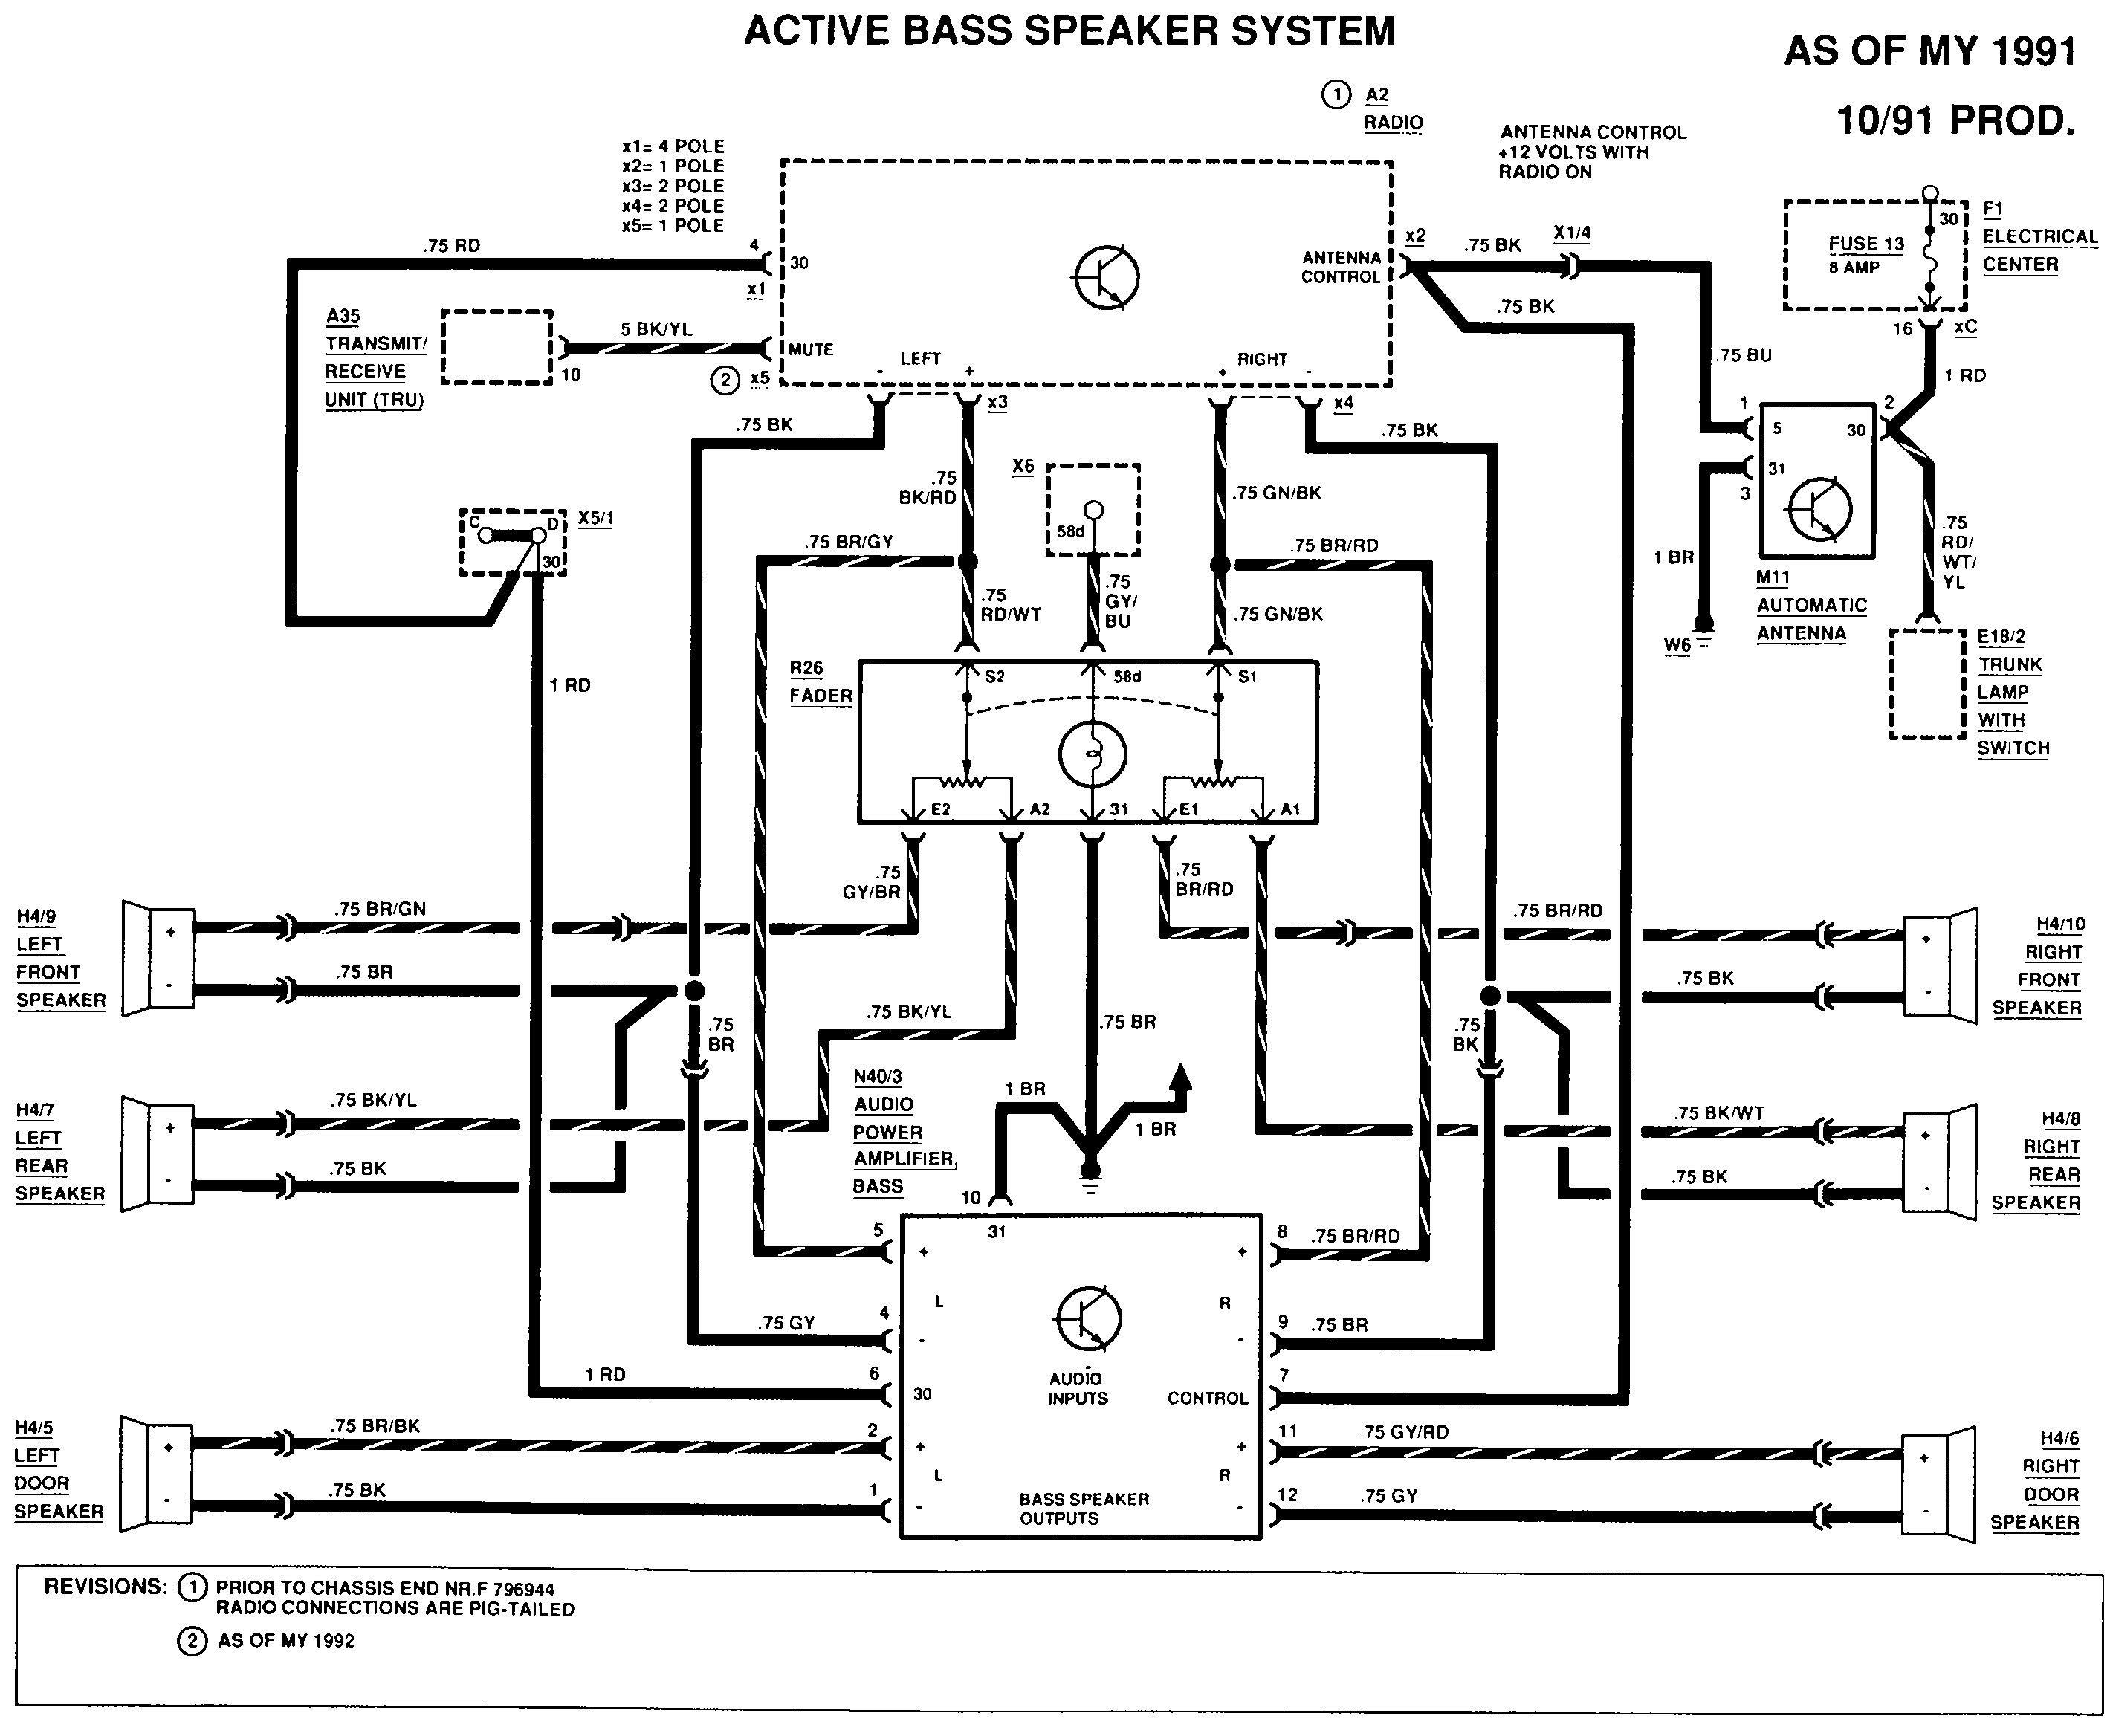 6 speaker amp diagnosis mercedes benz forum rh benzworld org Mercedes-Benz Radio Wiring Diagram for 2013 1990 Mercedes 300E Wiring-Diagram